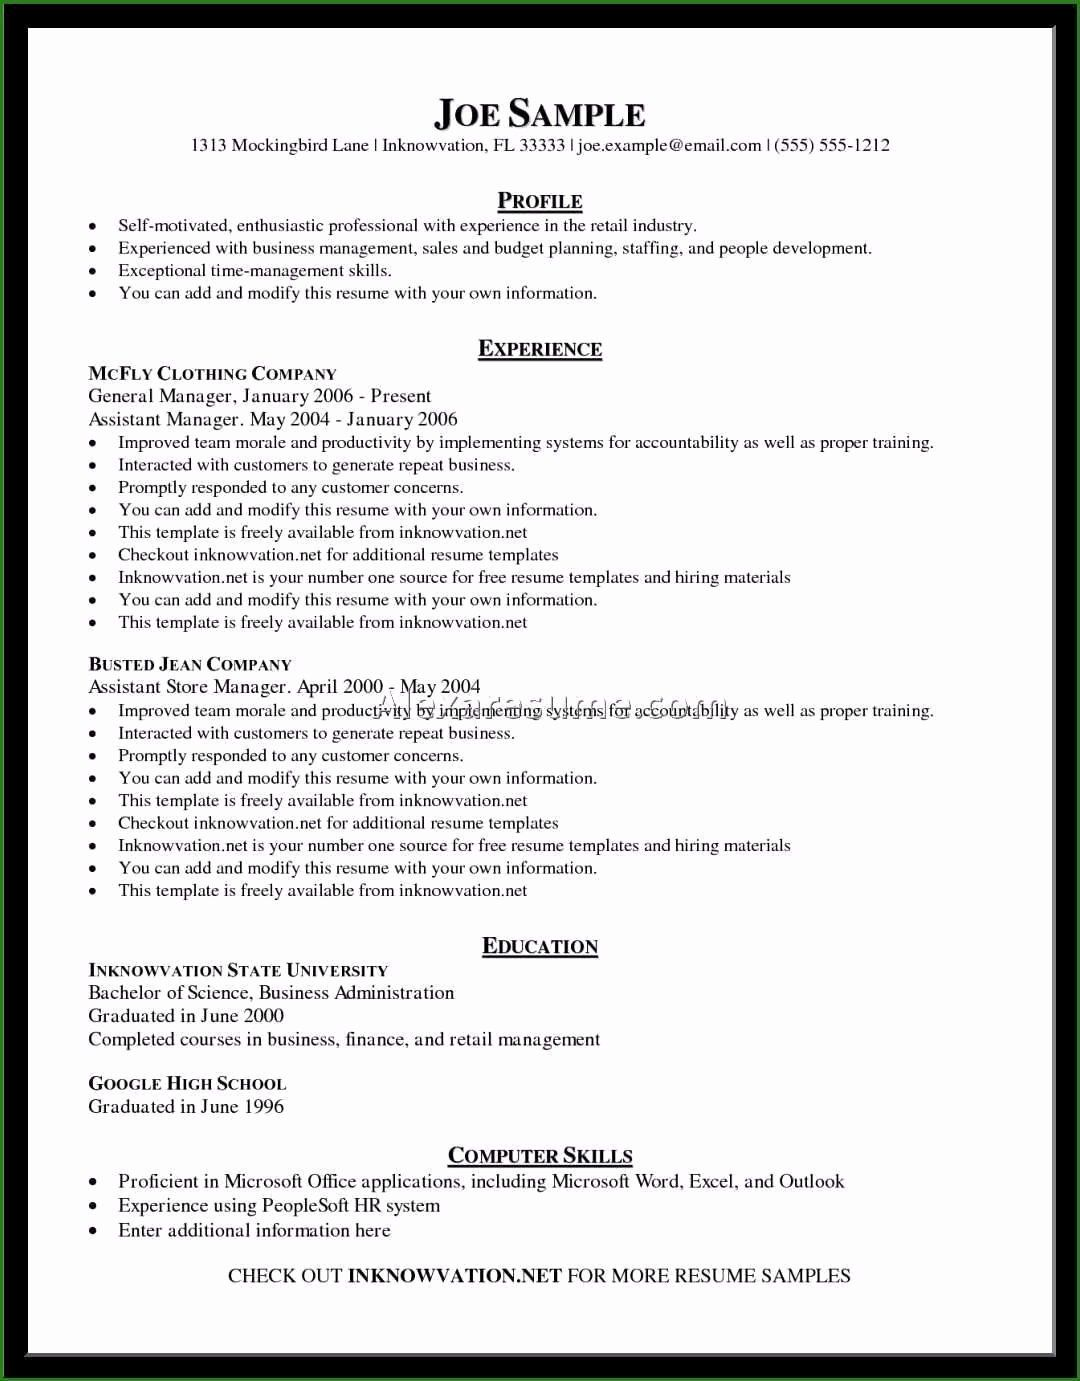 25 Free Resume Templates for Wordpad in 2020 Resume